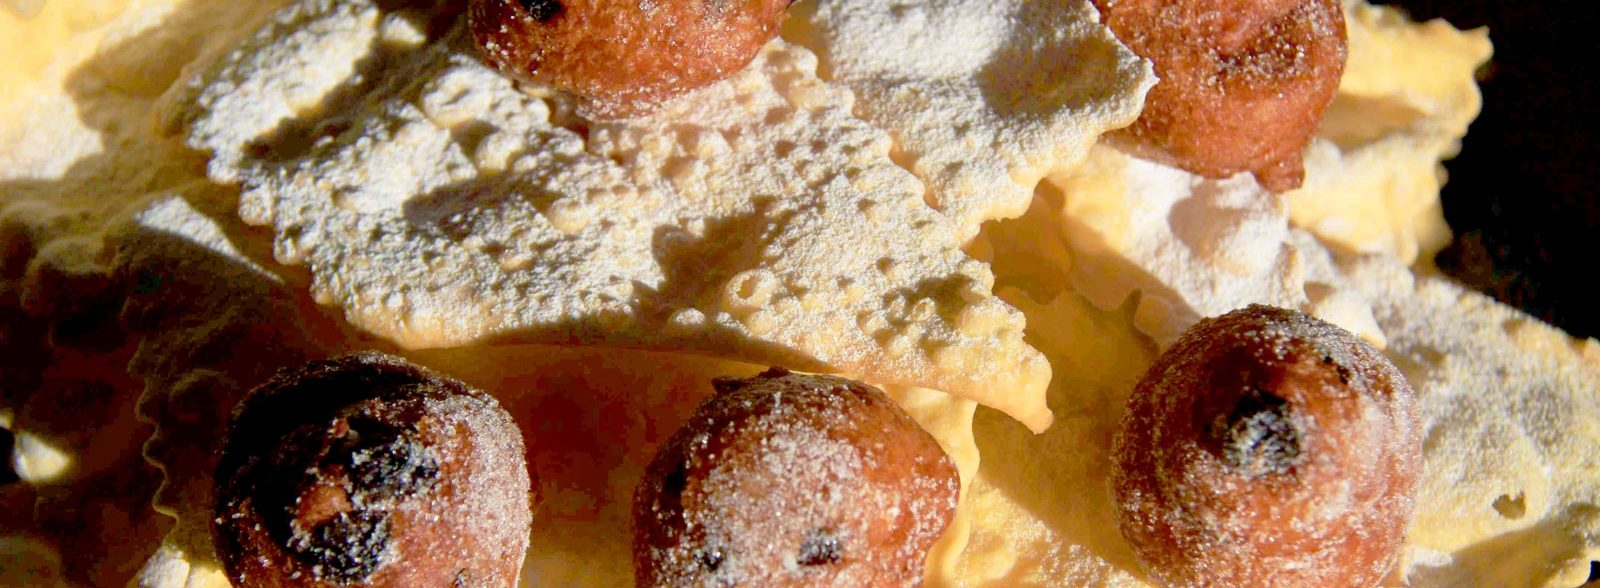 Venice Carnival food: 3 sweets you must try